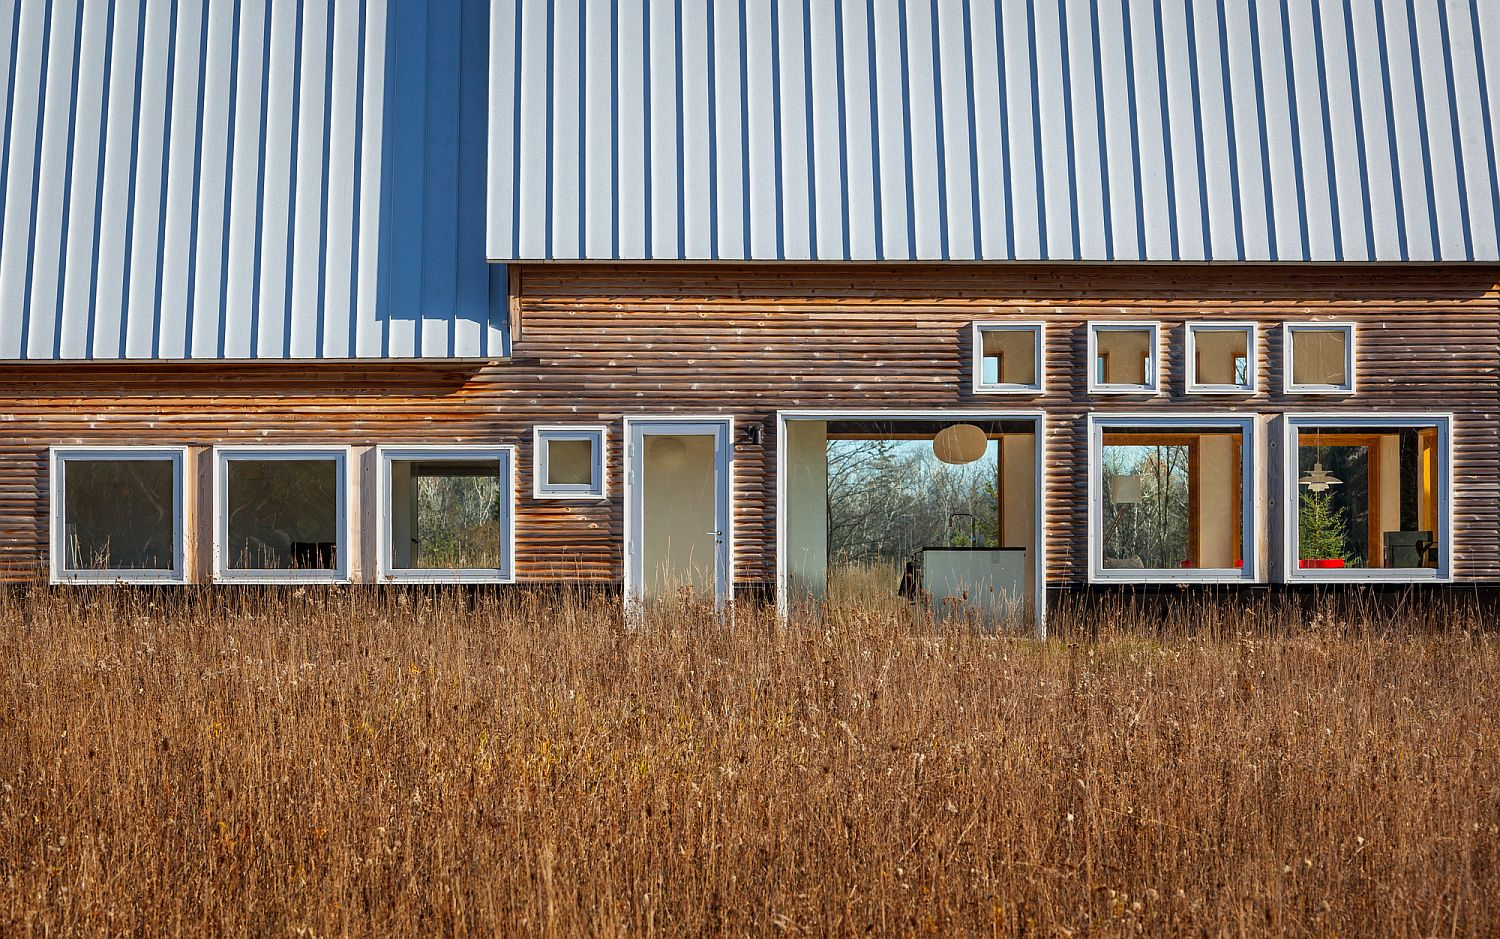 Wood-and-metal-exterior-of-the-home-inspred-by-classic-farmsteads